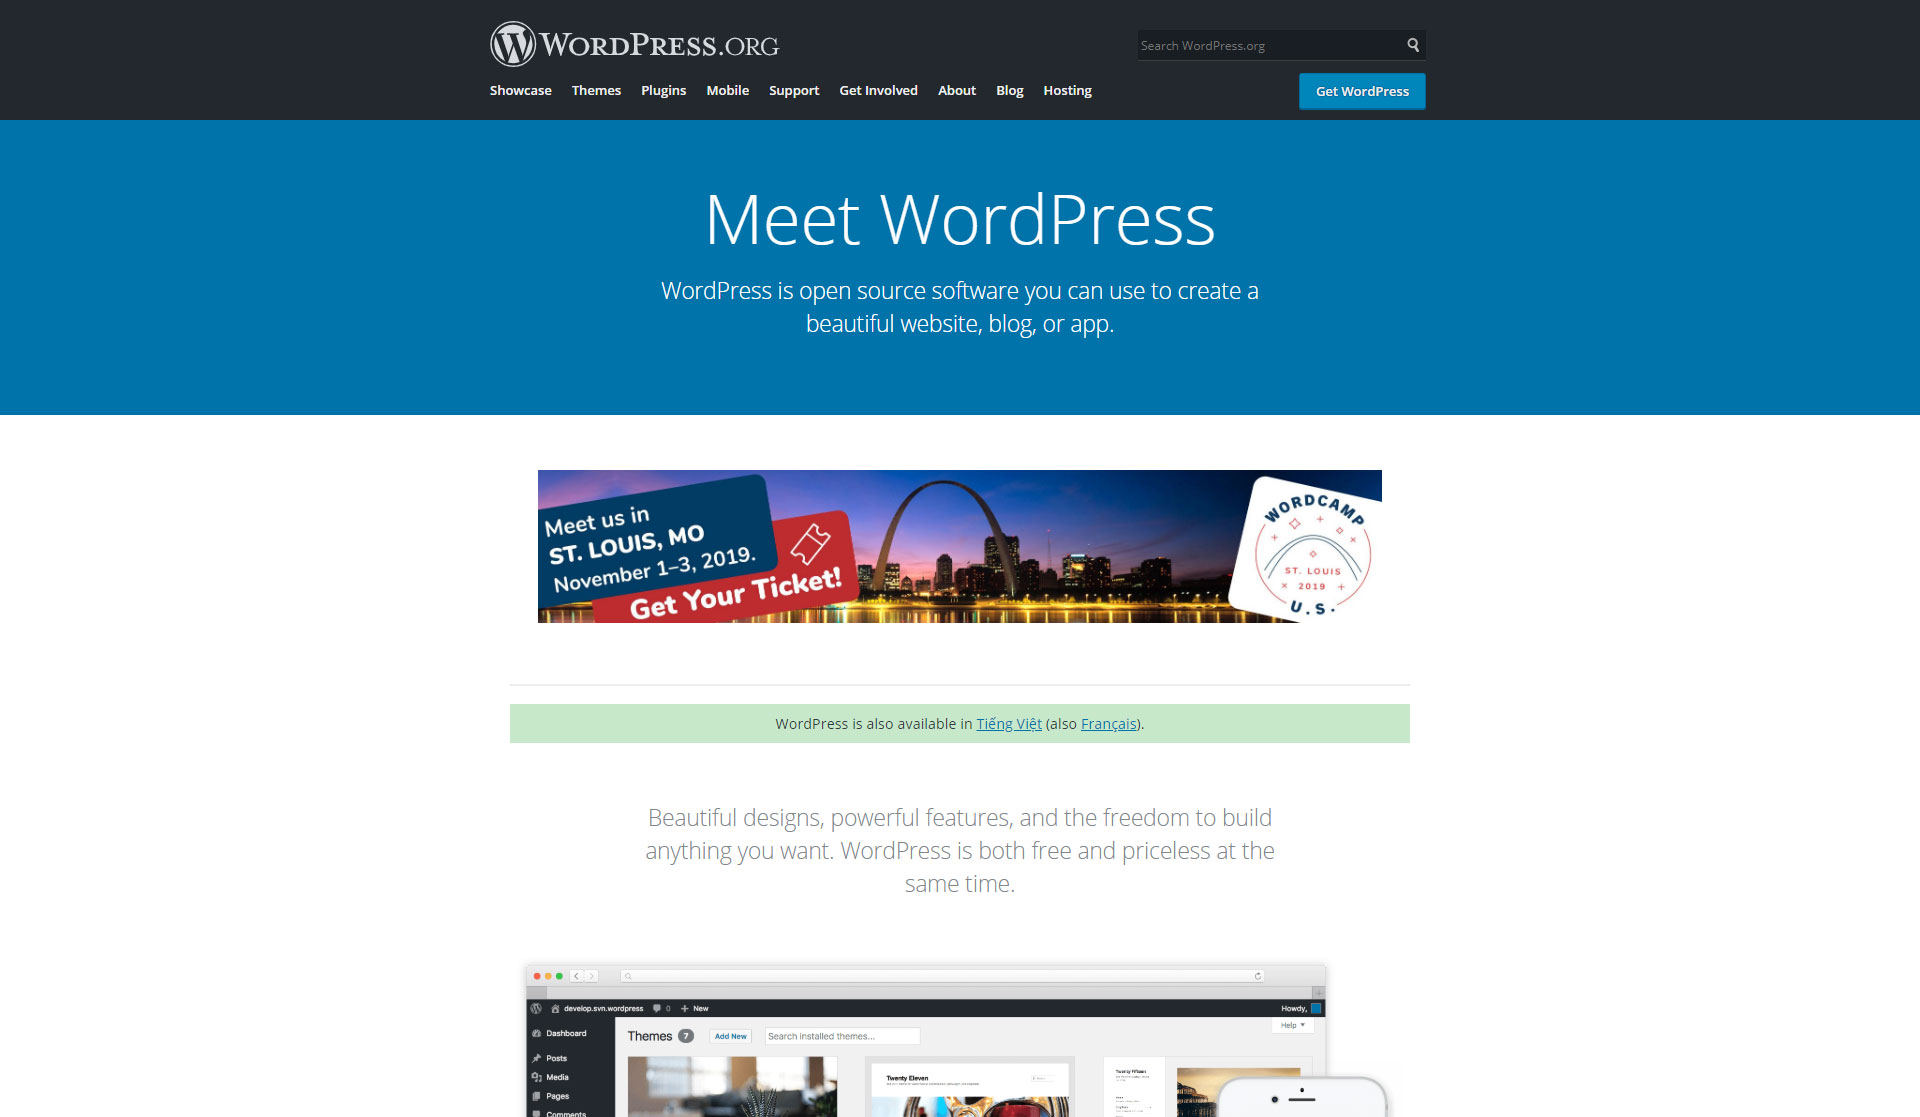 WordPress - Best Free Content Management System